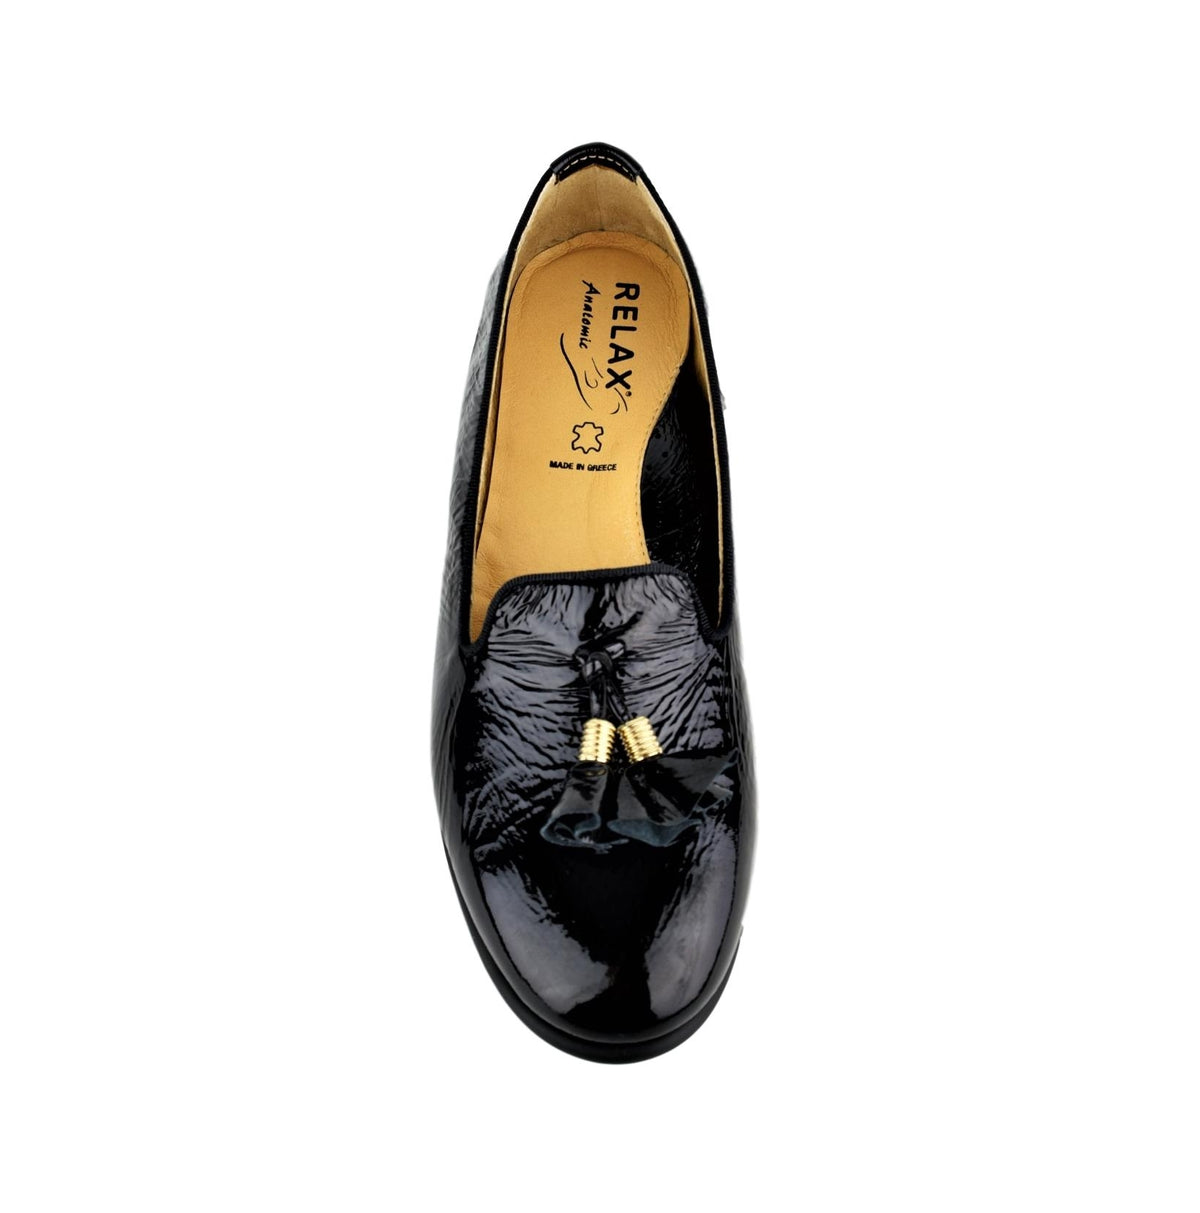 ANGE2 - Relax Closed Shoe Black Patent